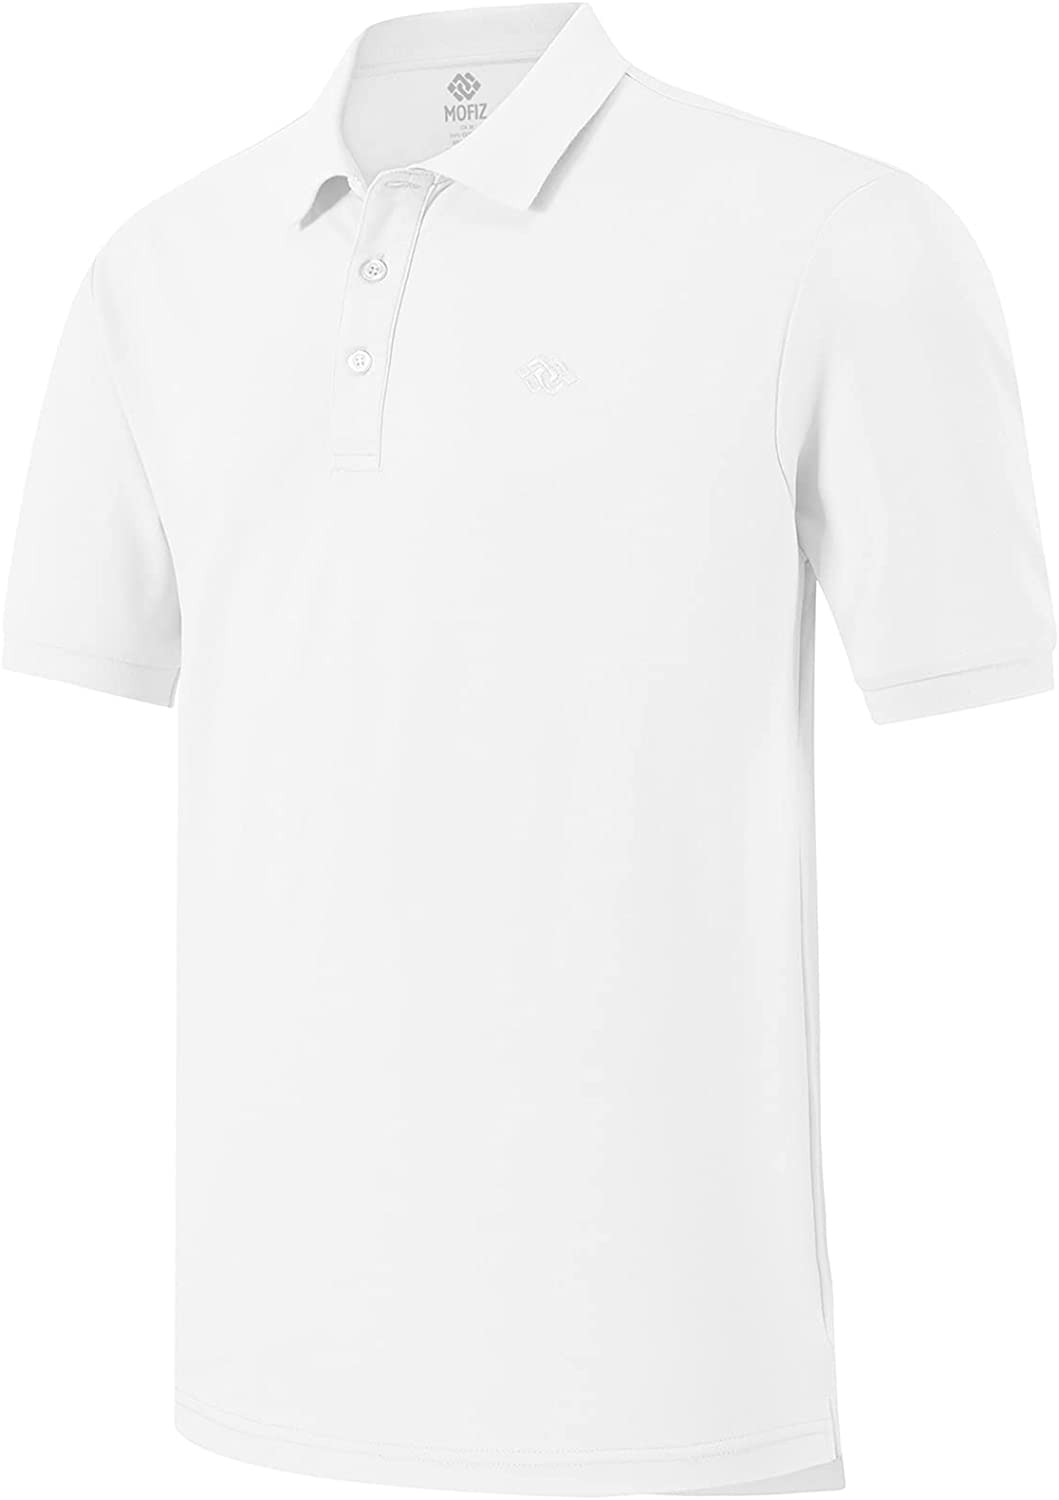 MoFiz Casual Golf Shirts for Award-winning store Men Men's New Shipping Free Dry Shirt with Polo Fit